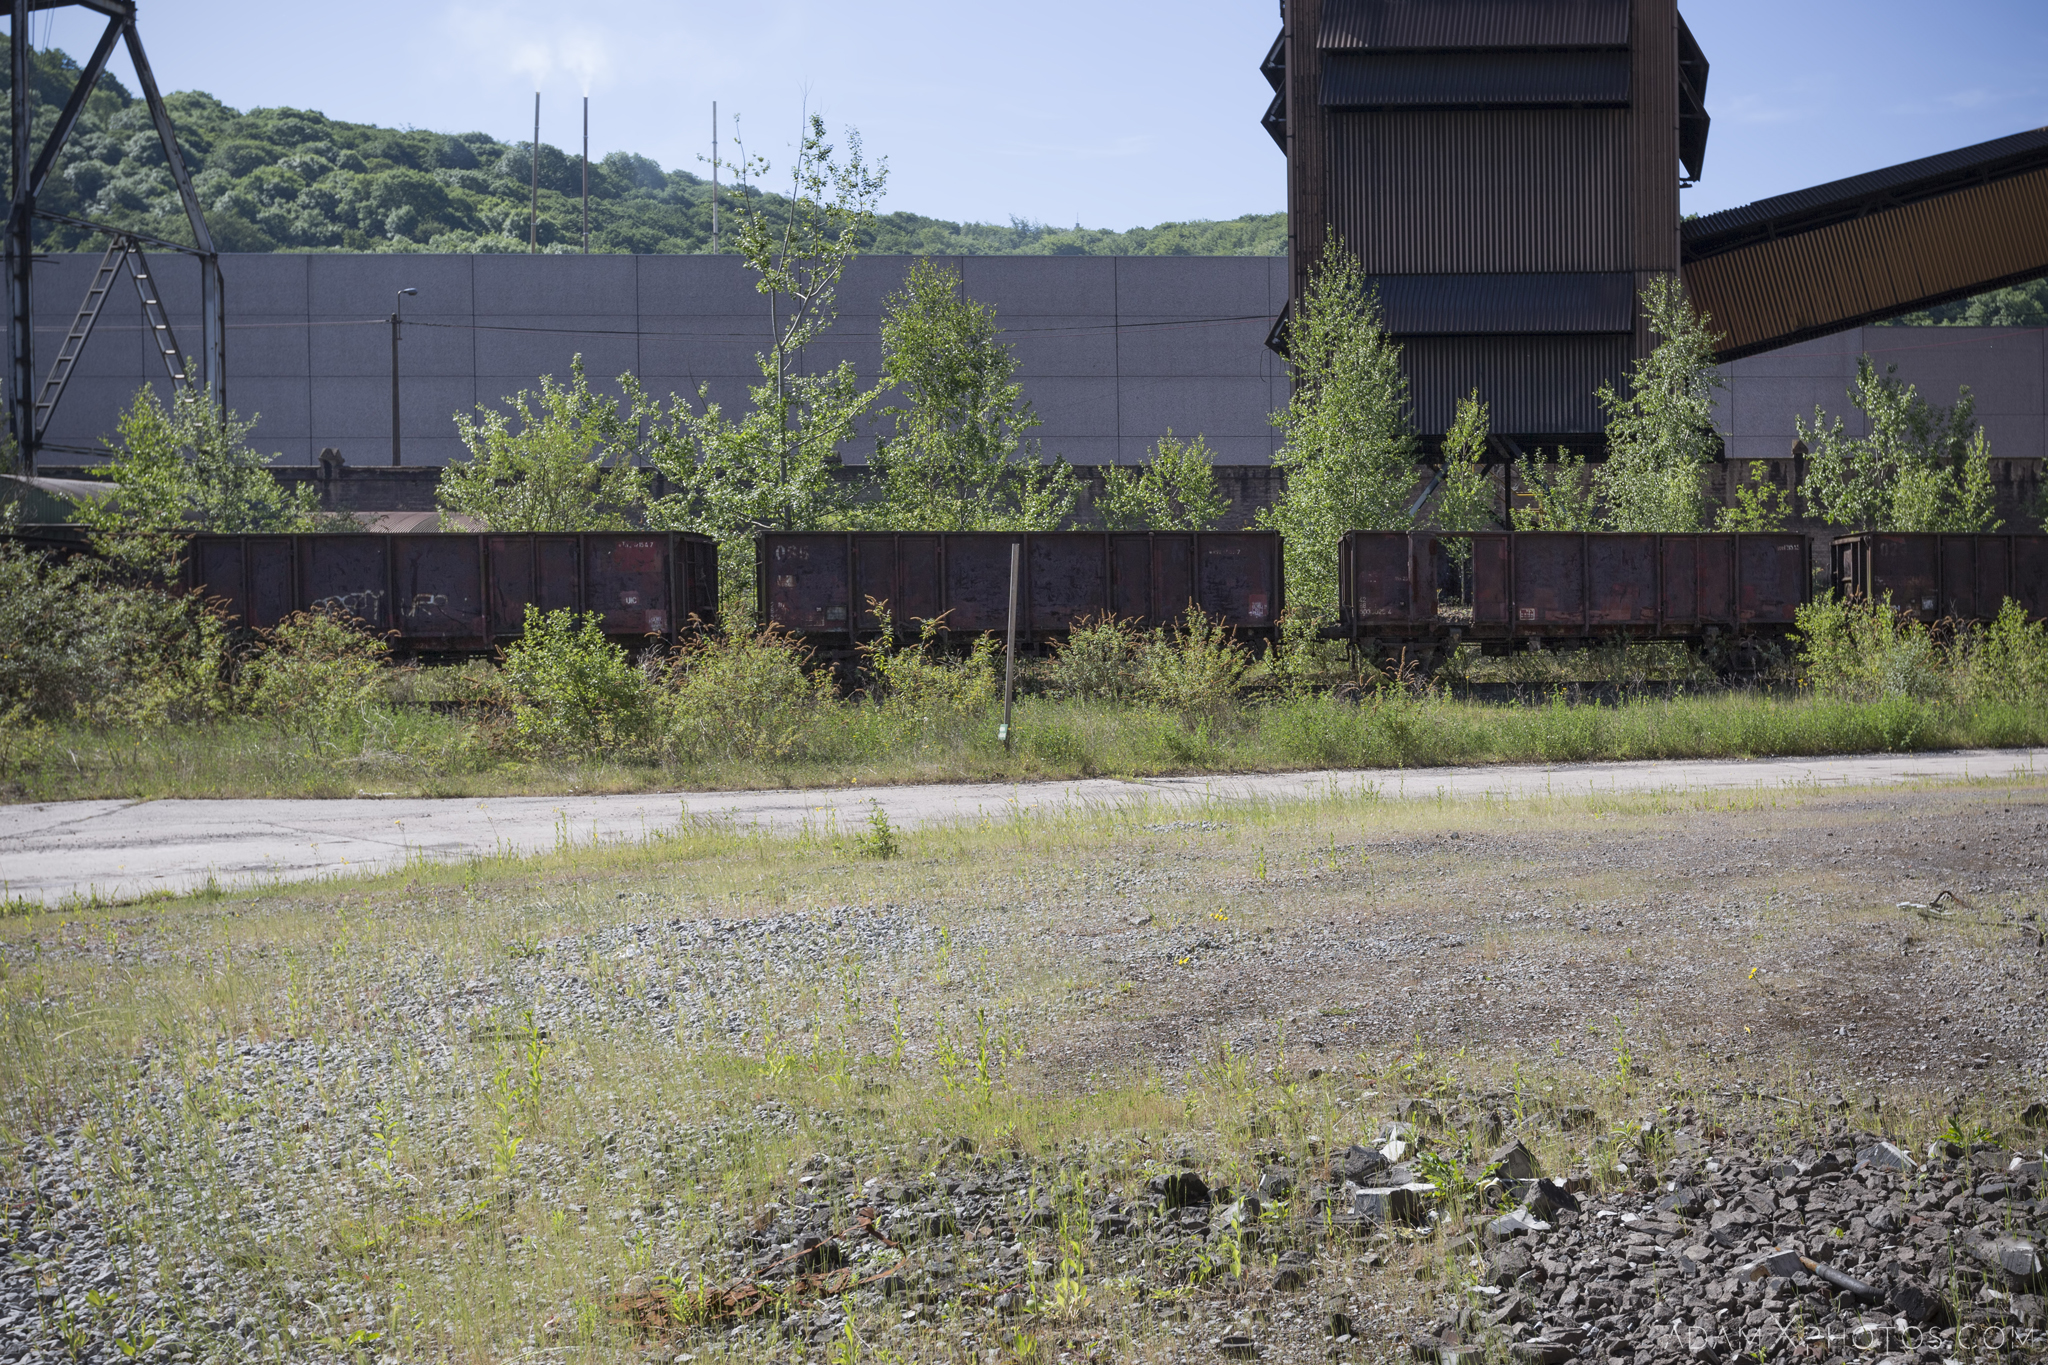 old railway carriages Haut Fourneau B HFB Blast Furnace Steelworks Adam X Urban Exploration Belgium Access 2017 Abandoned decay lost forgotten derelict location creepy haunting eerie